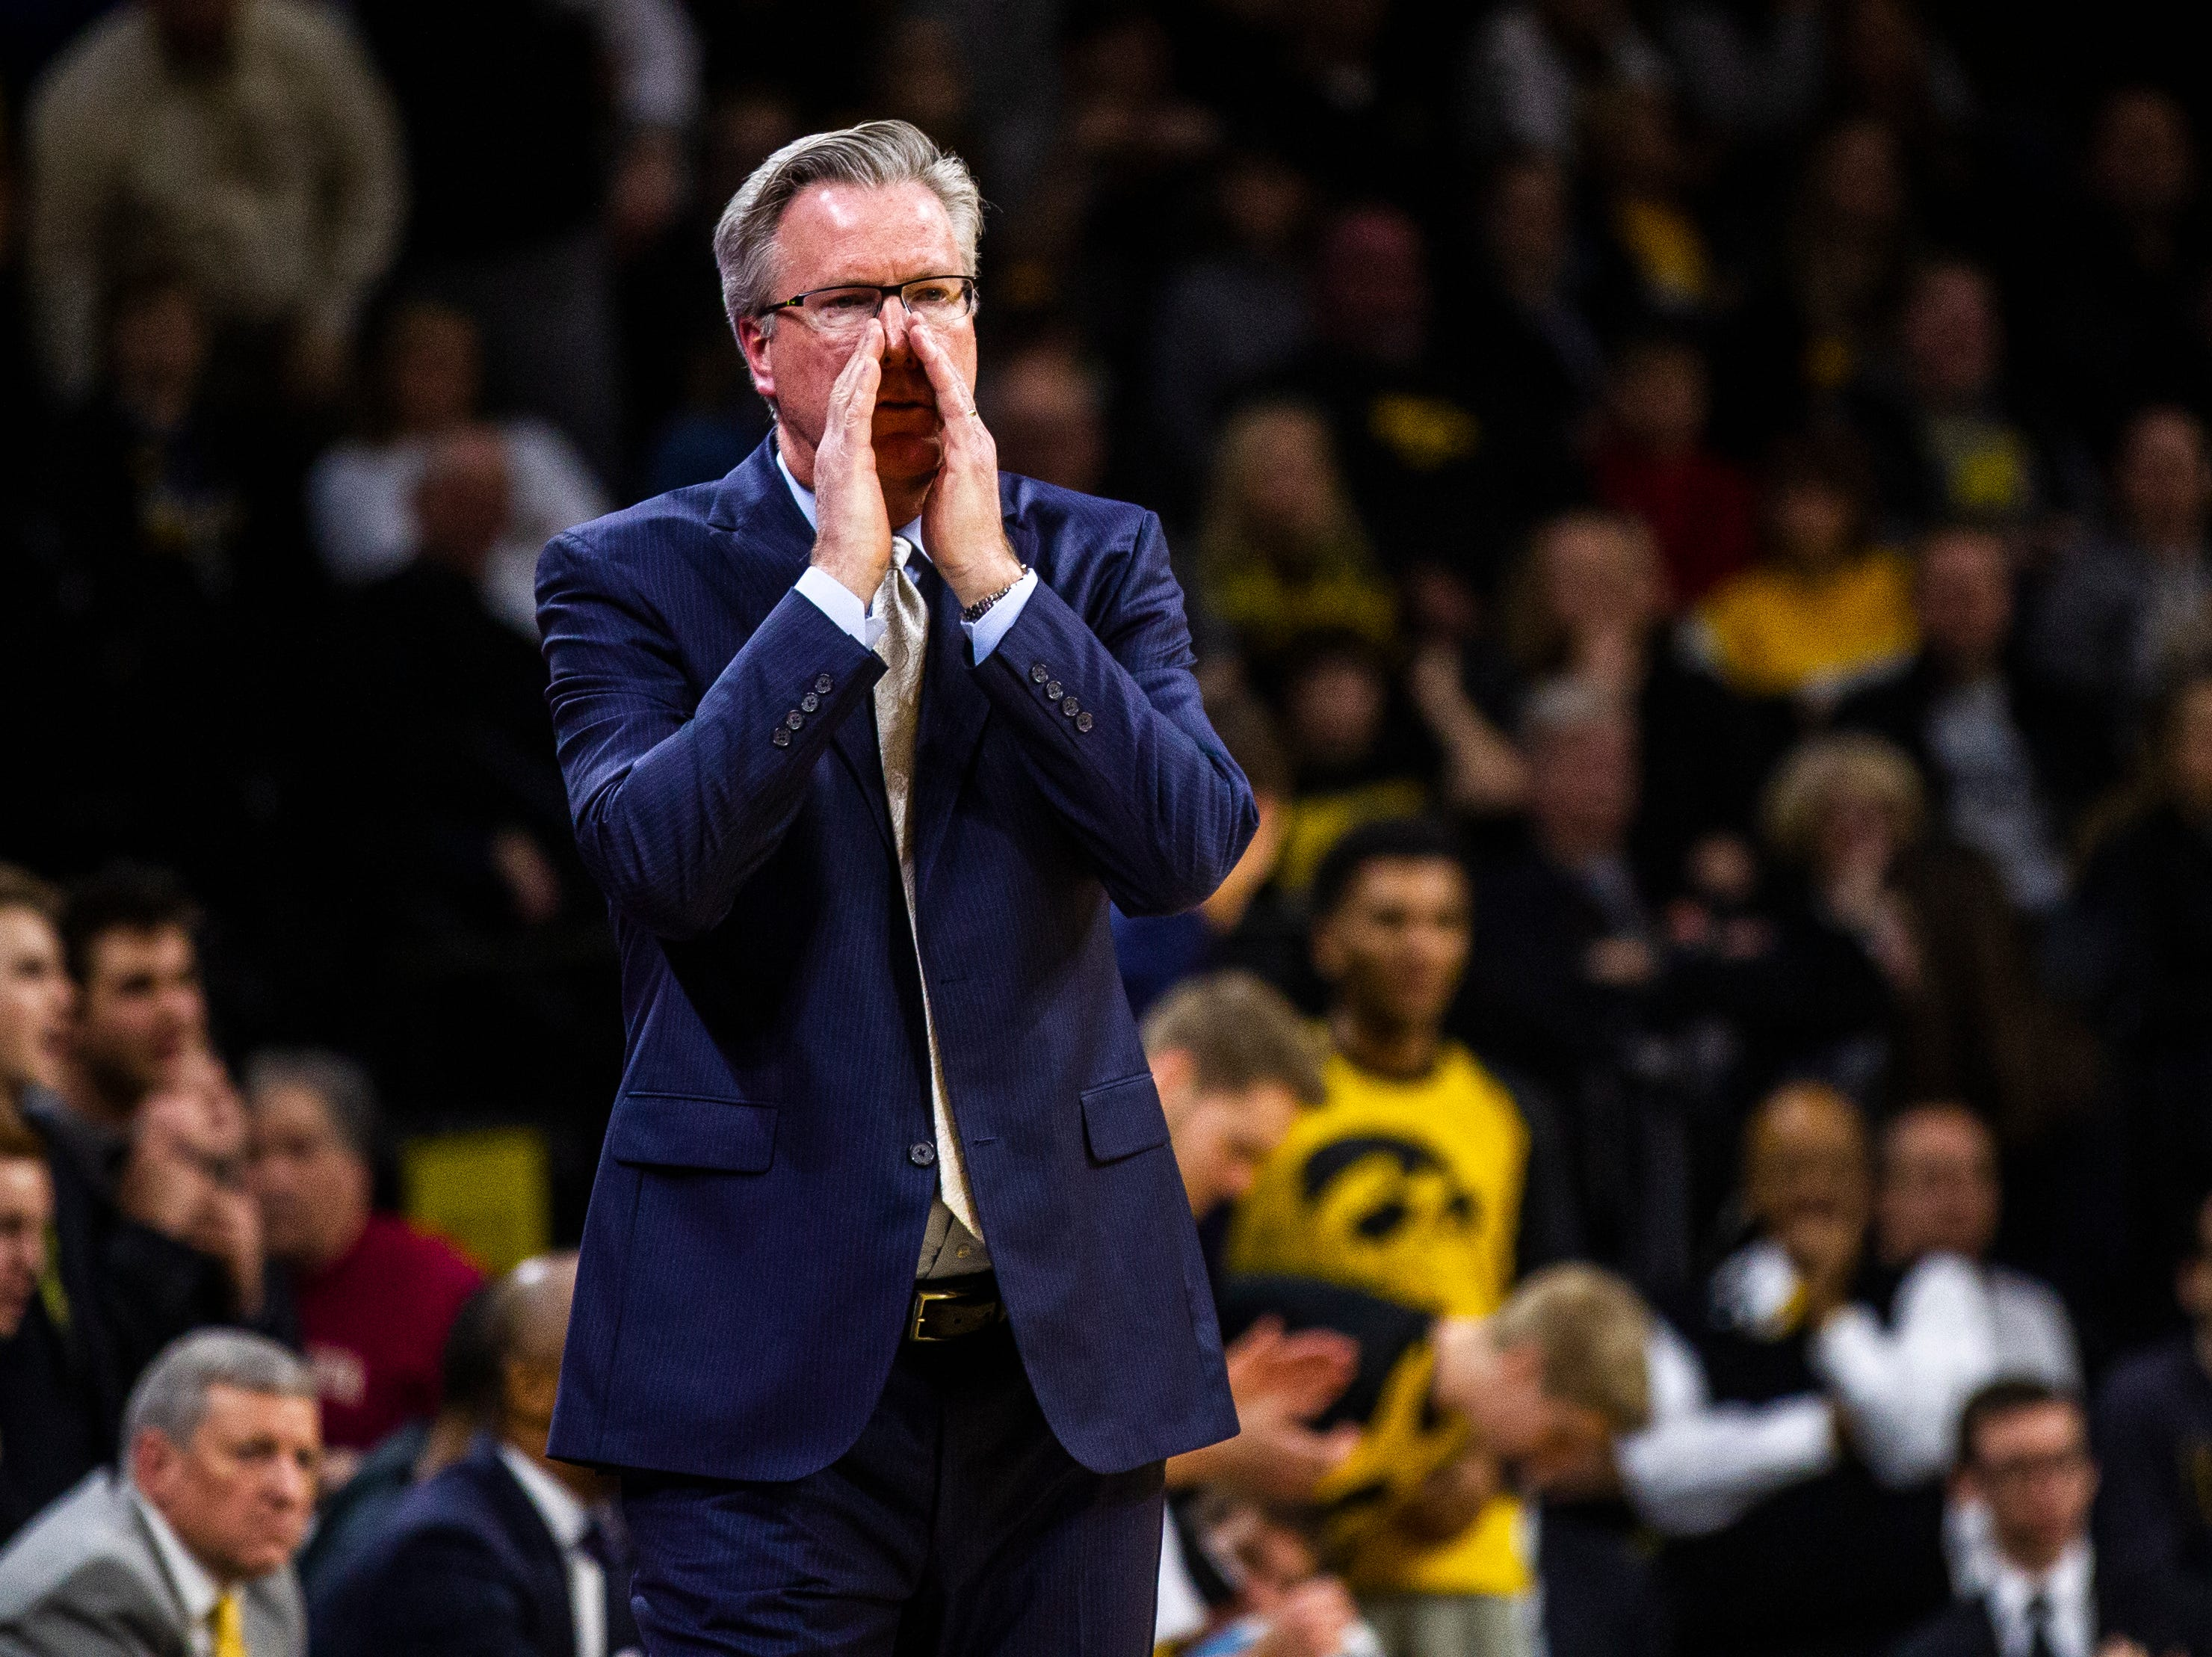 Iowa men's basketball head coach Fran McCaffery calls out to players during a NCAA Cy-Hawk series men's basketball game on Thursday, Dec. 6, 2018, at Carver-Hawkeye Arena in Iowa City.